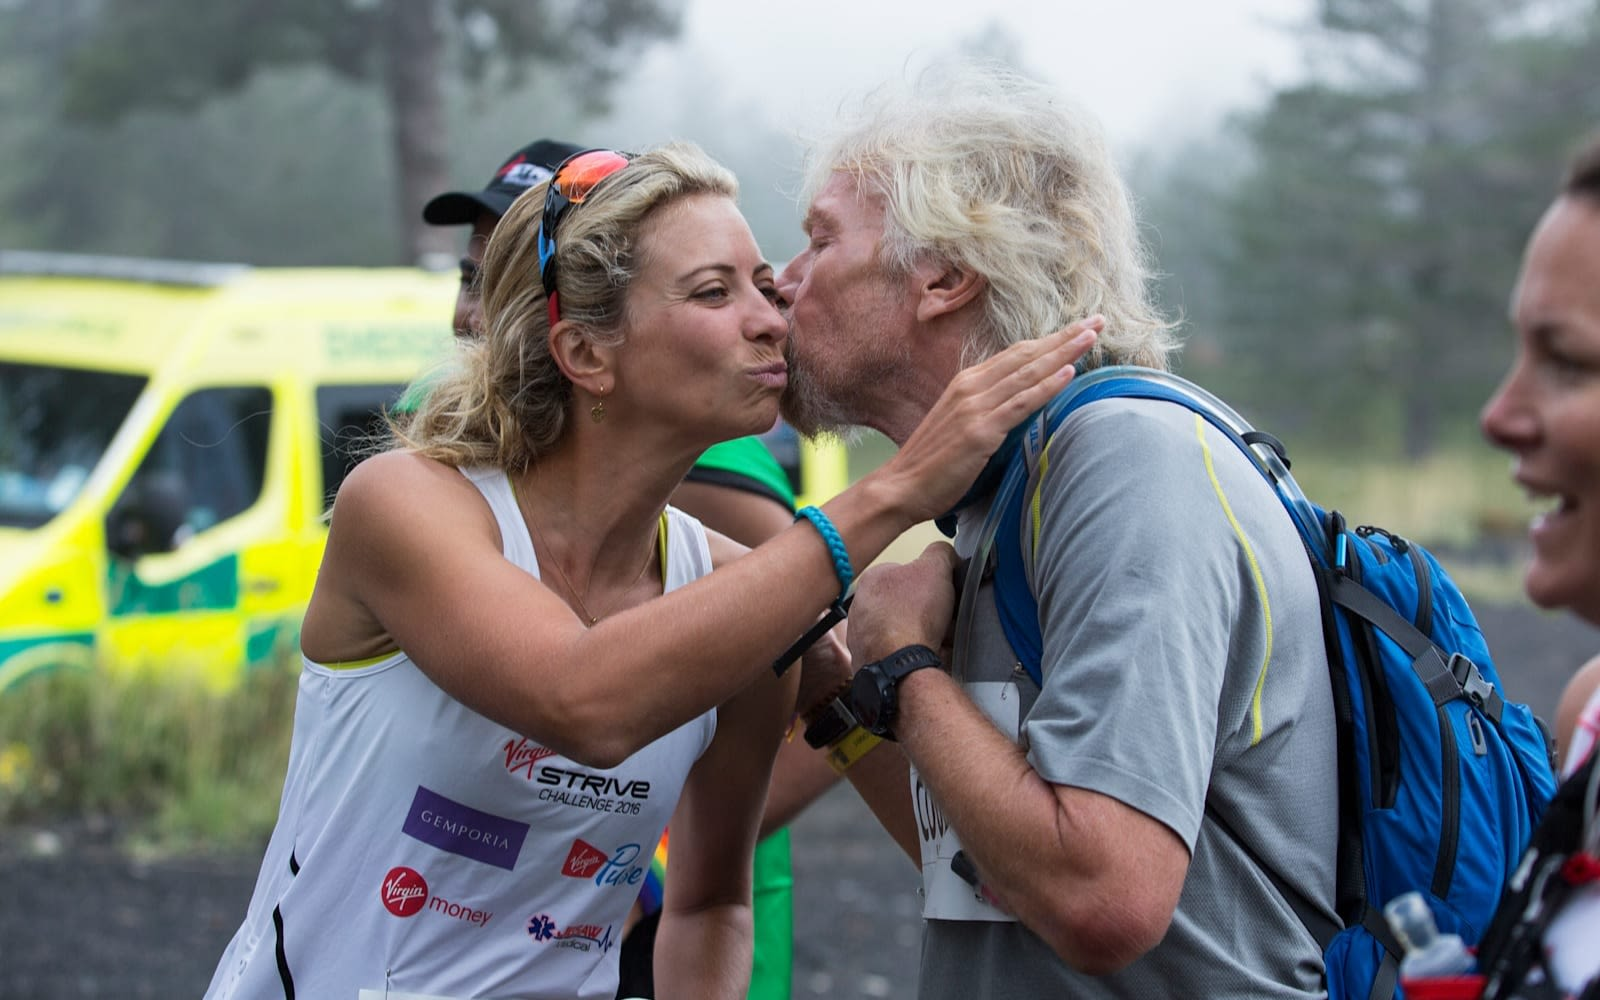 Richard Branson kissing Holly Branson's cheek during the 2016 Strive Challenge